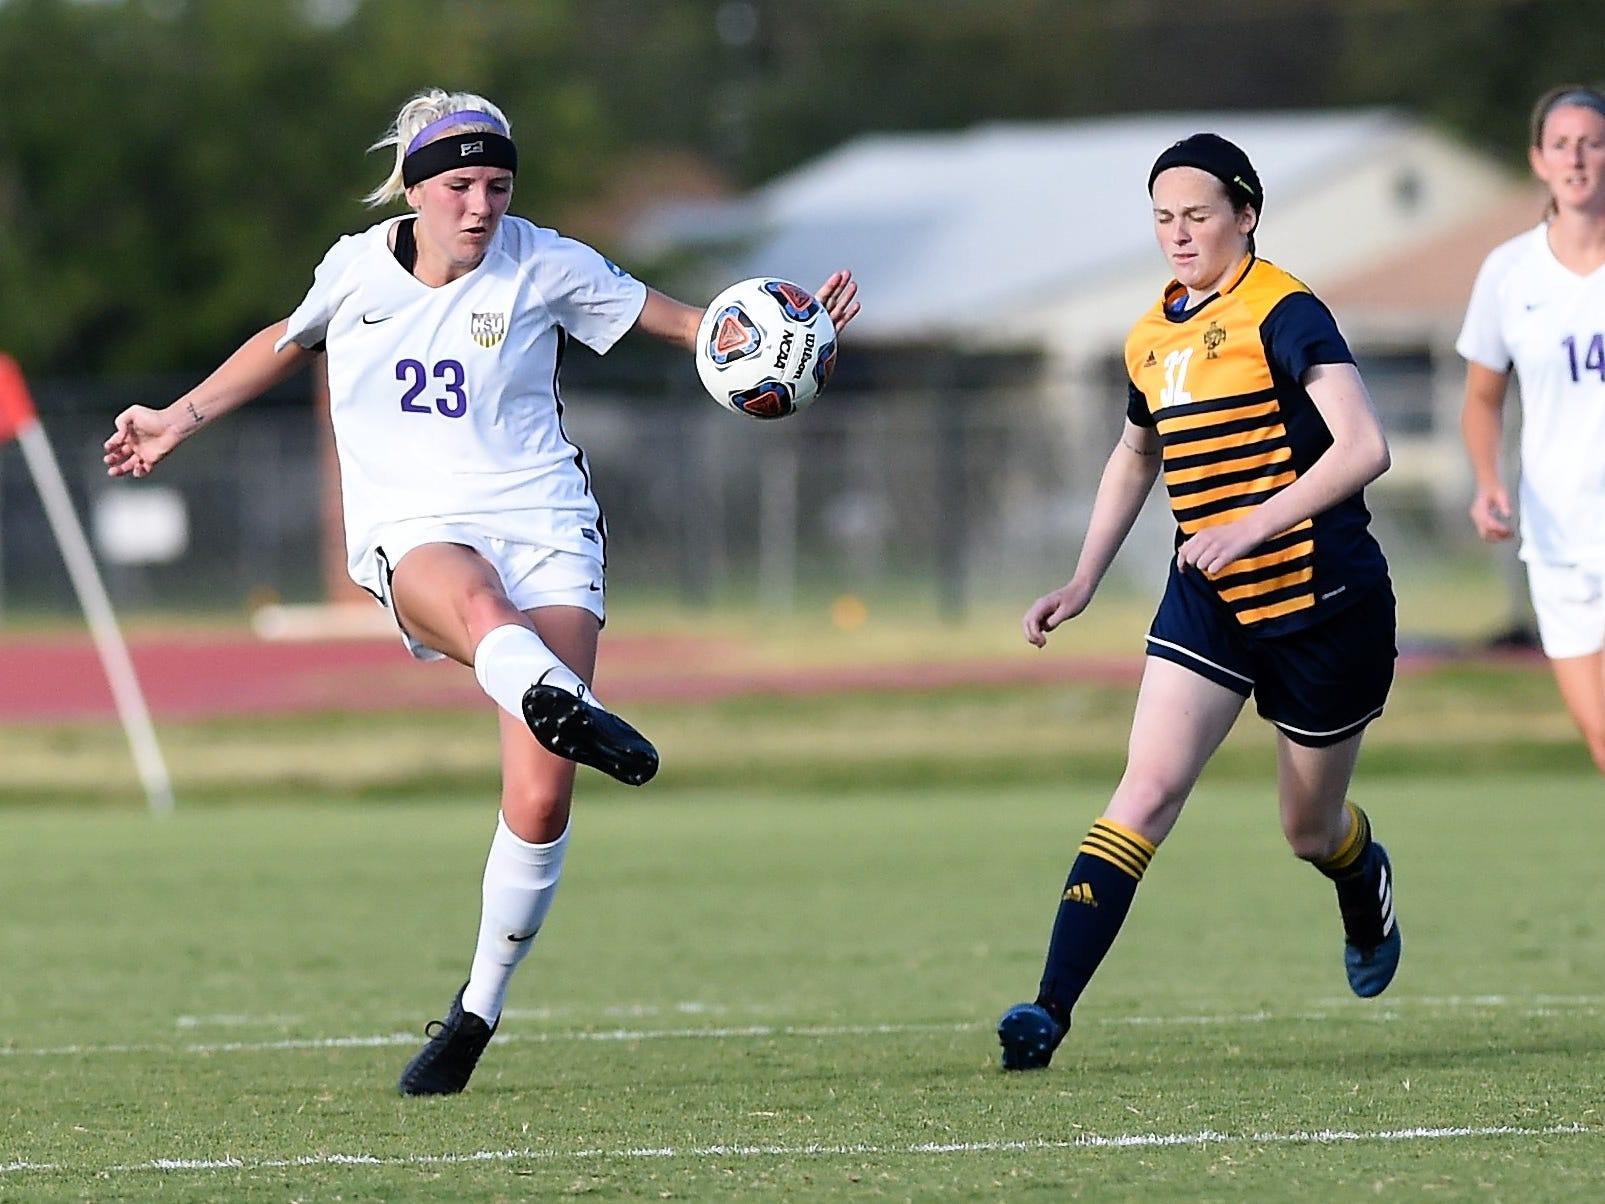 Hardin-Simmons defender Baylee Ford (23) clears the ball against Howard Payne at the HSU Soccer Complex on Thursday, Oct. 11, 2018. The Cowgirls won 4-1.